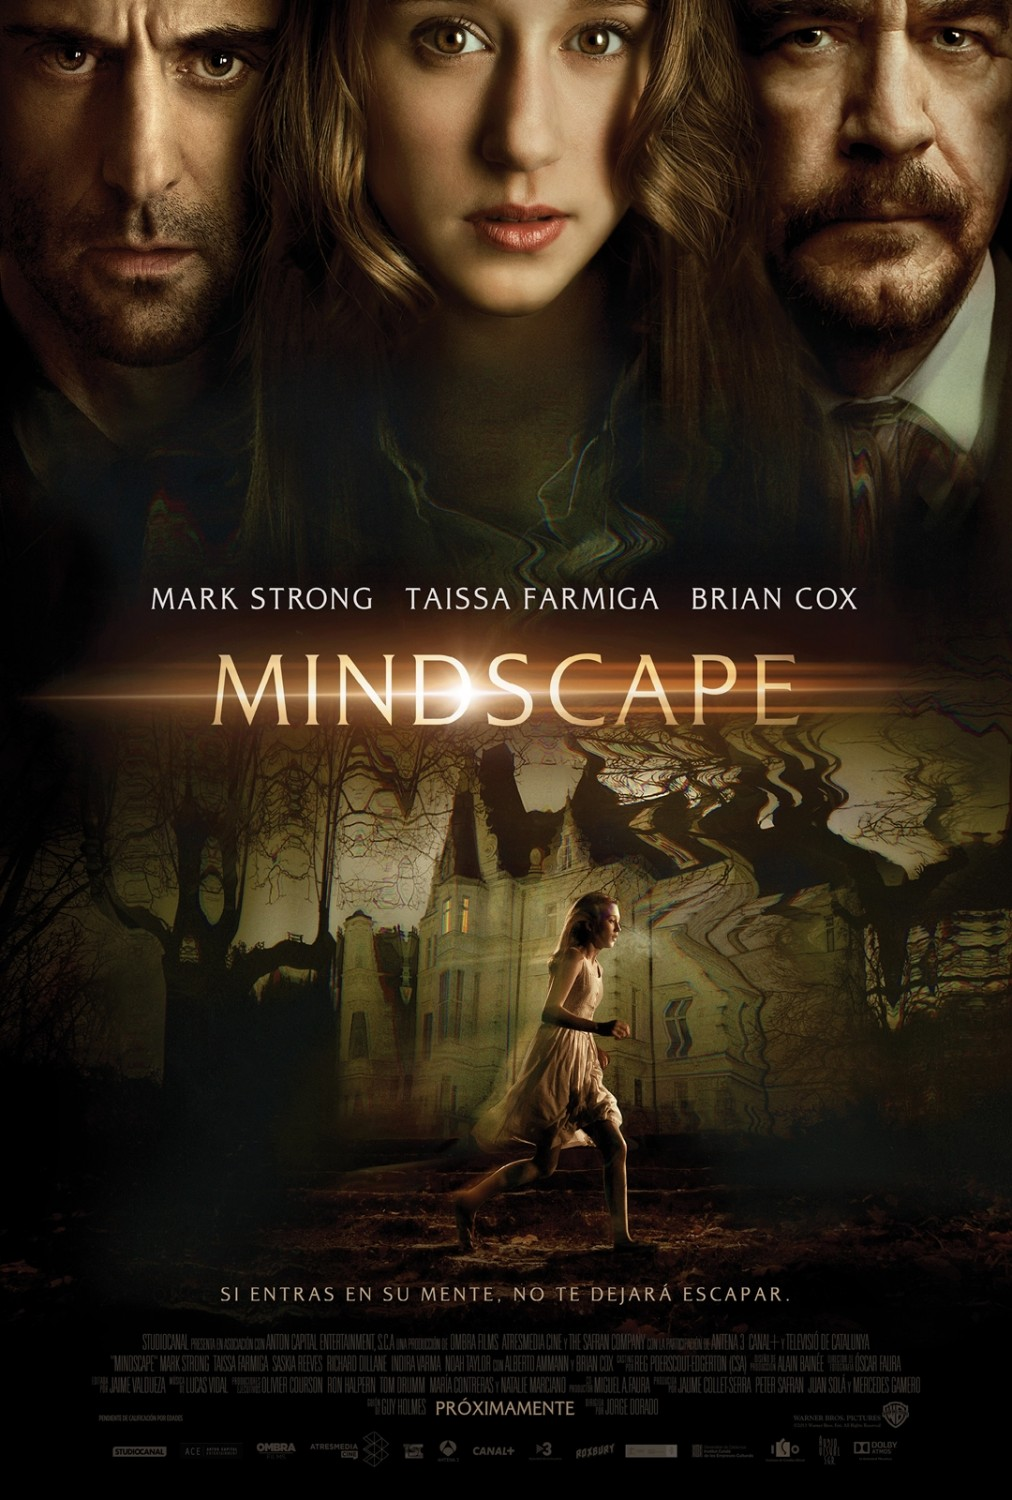 Mindscape-Official Poster Banner PROMO POSTER-09OUTUBRO2013